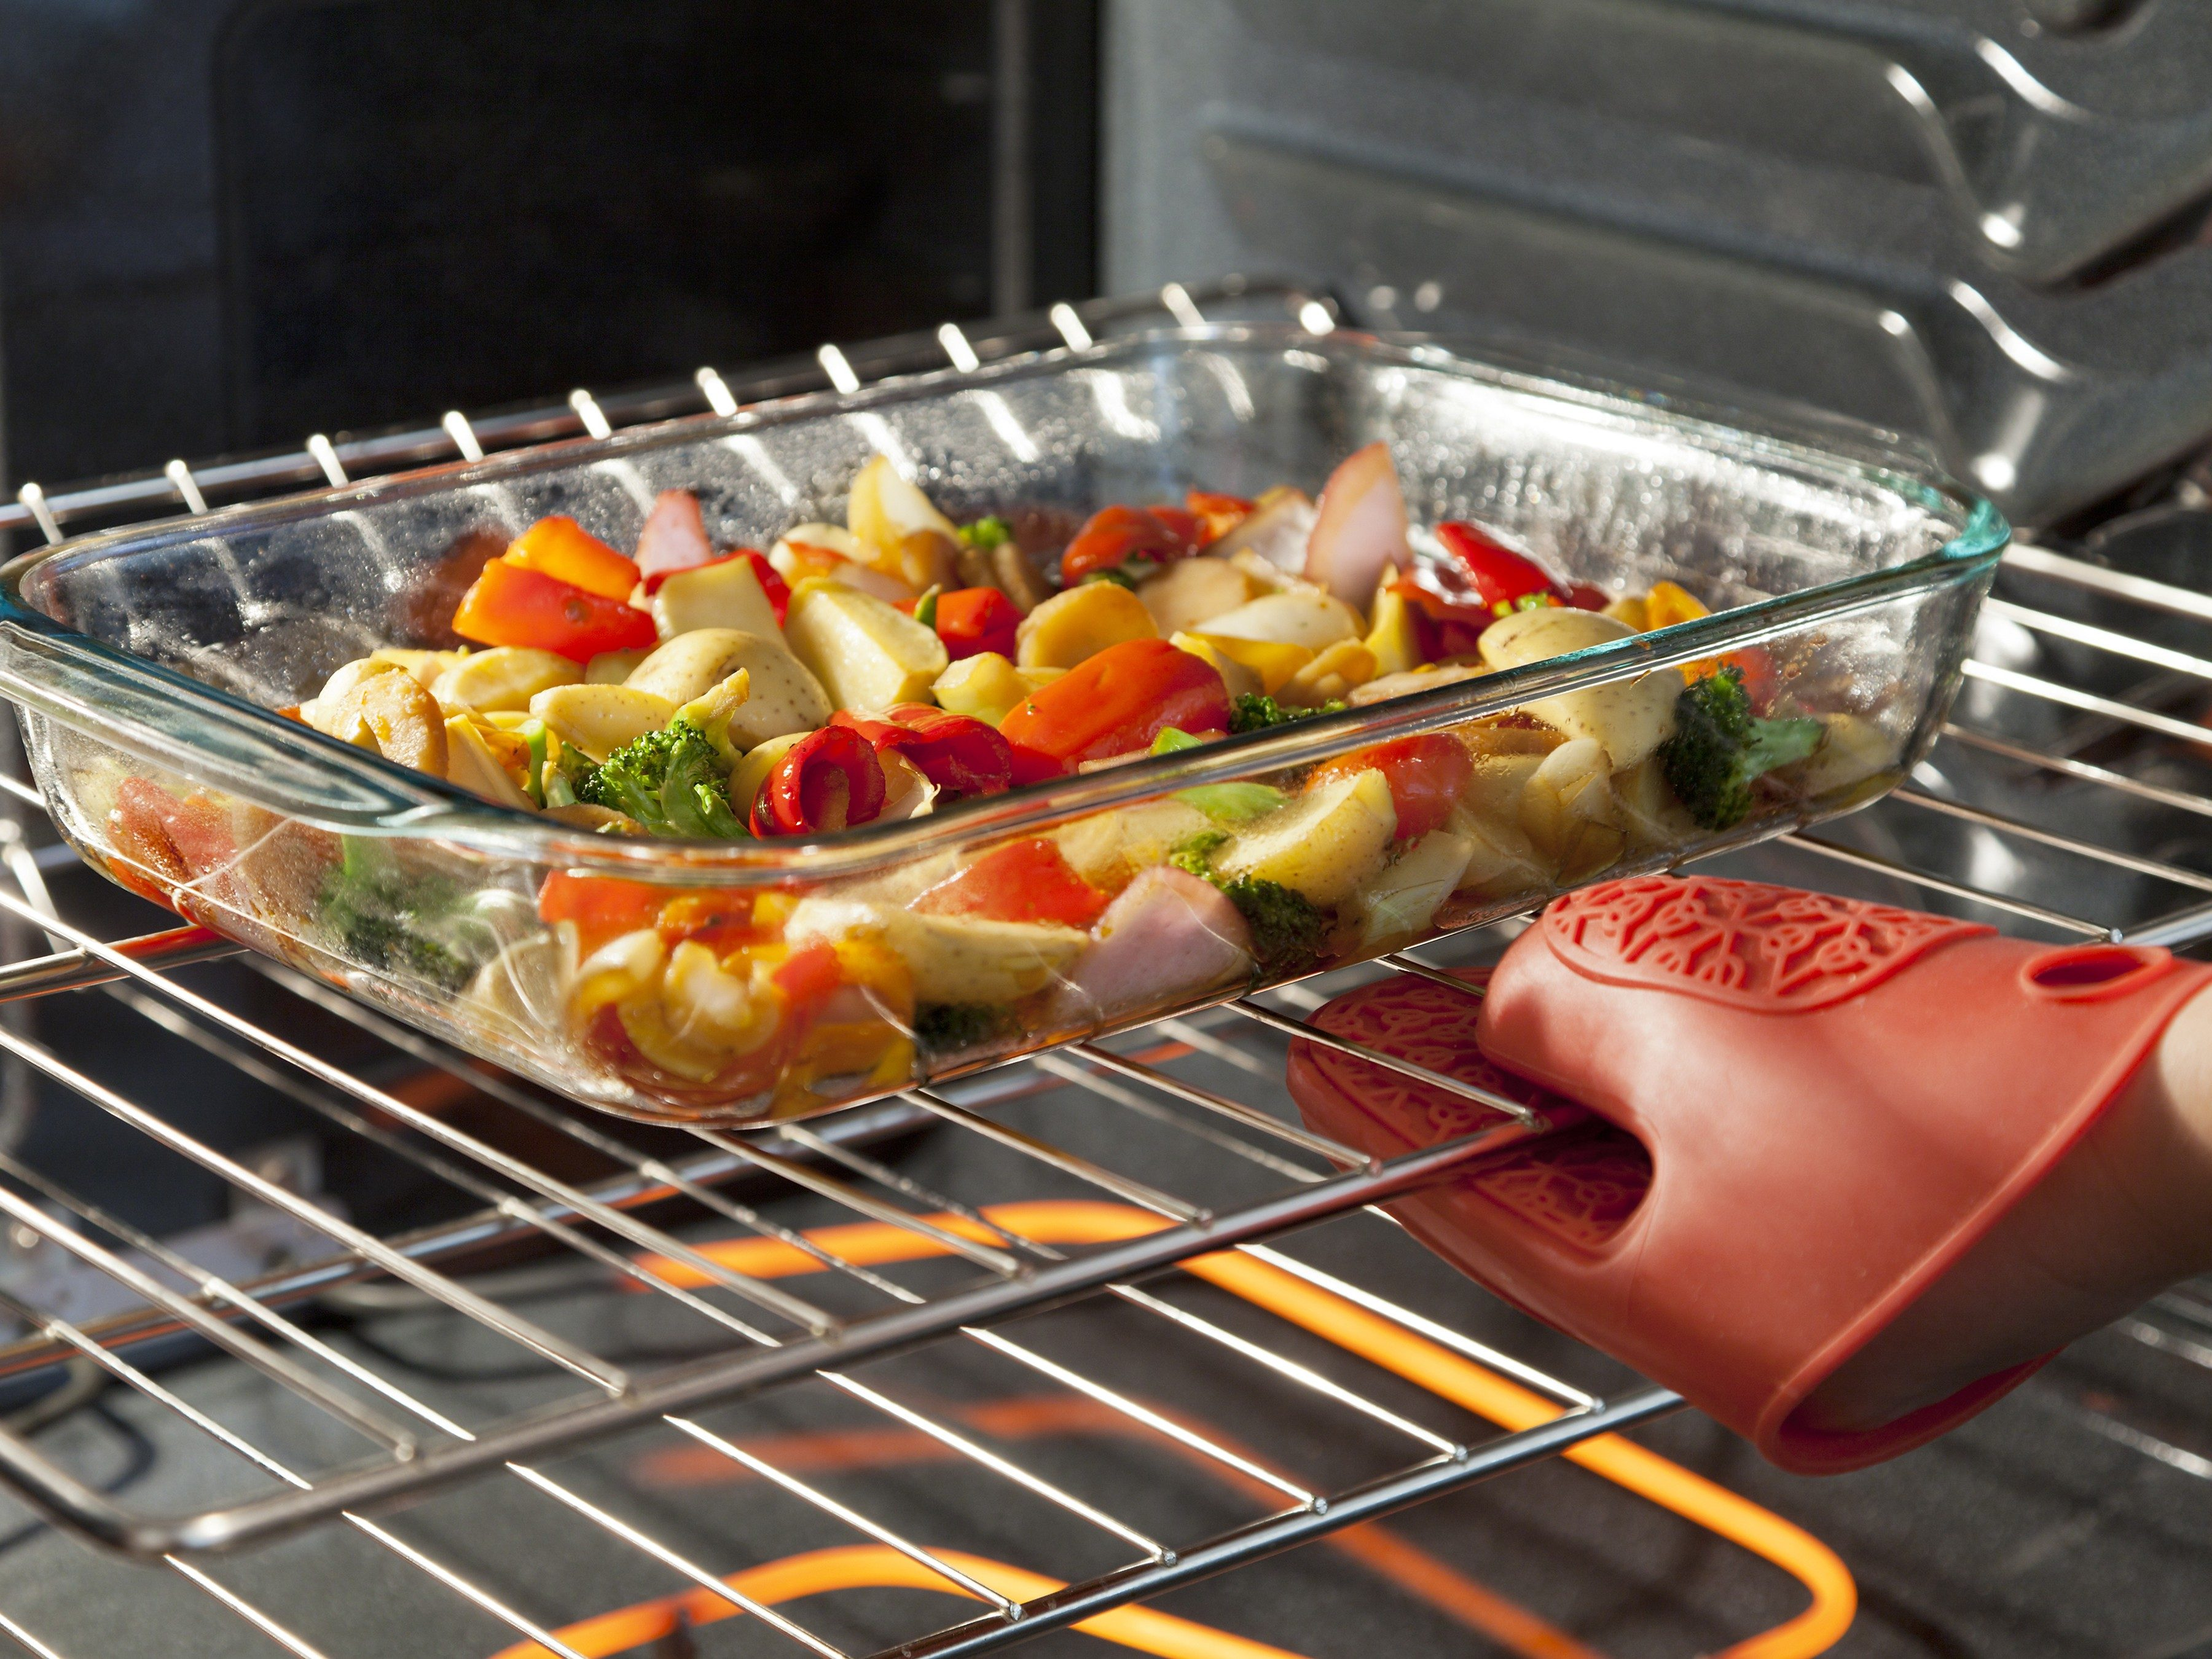 How to Make an Oven Rack Glide Smoothly